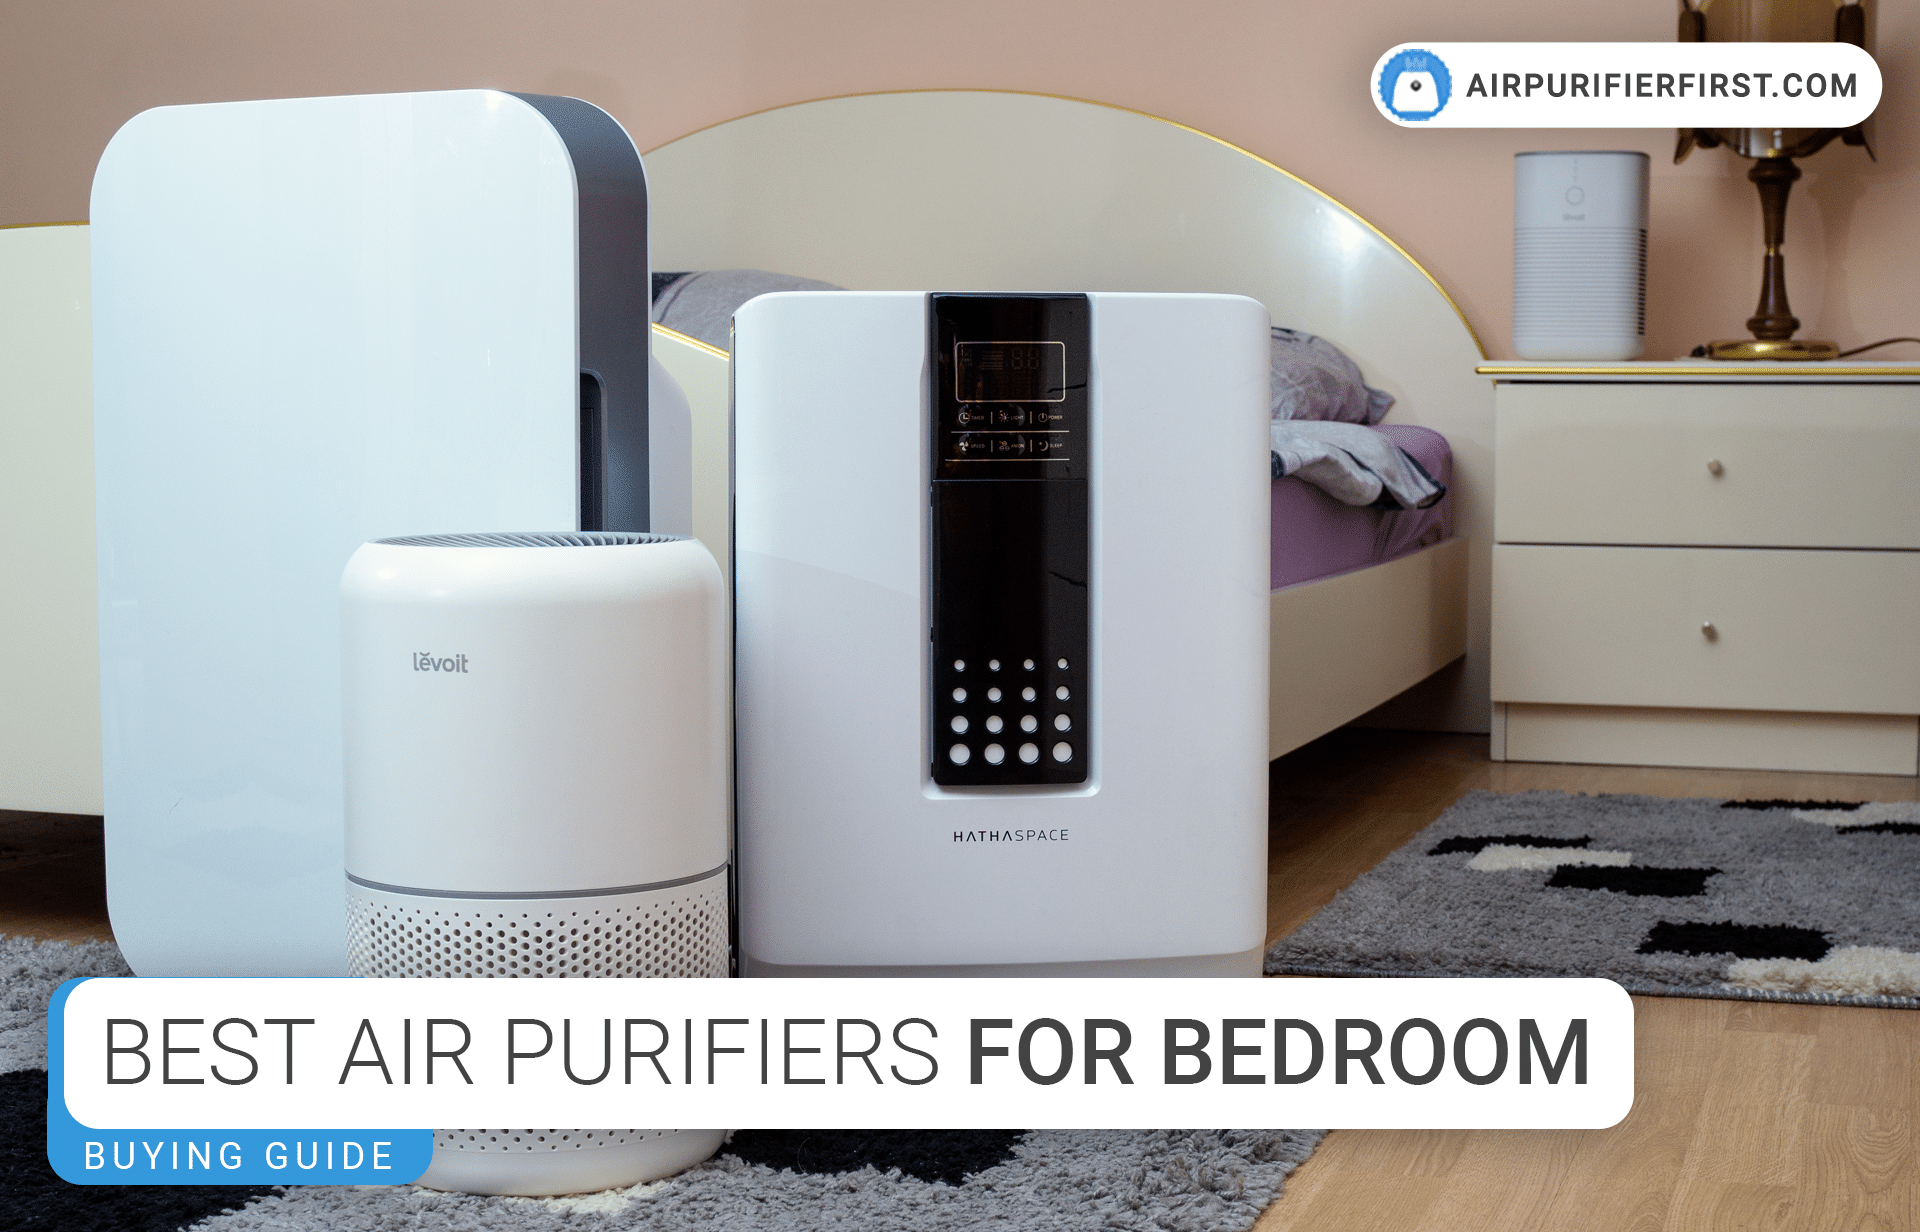 Best Air Purifiers For Bedroom - Buying Guide